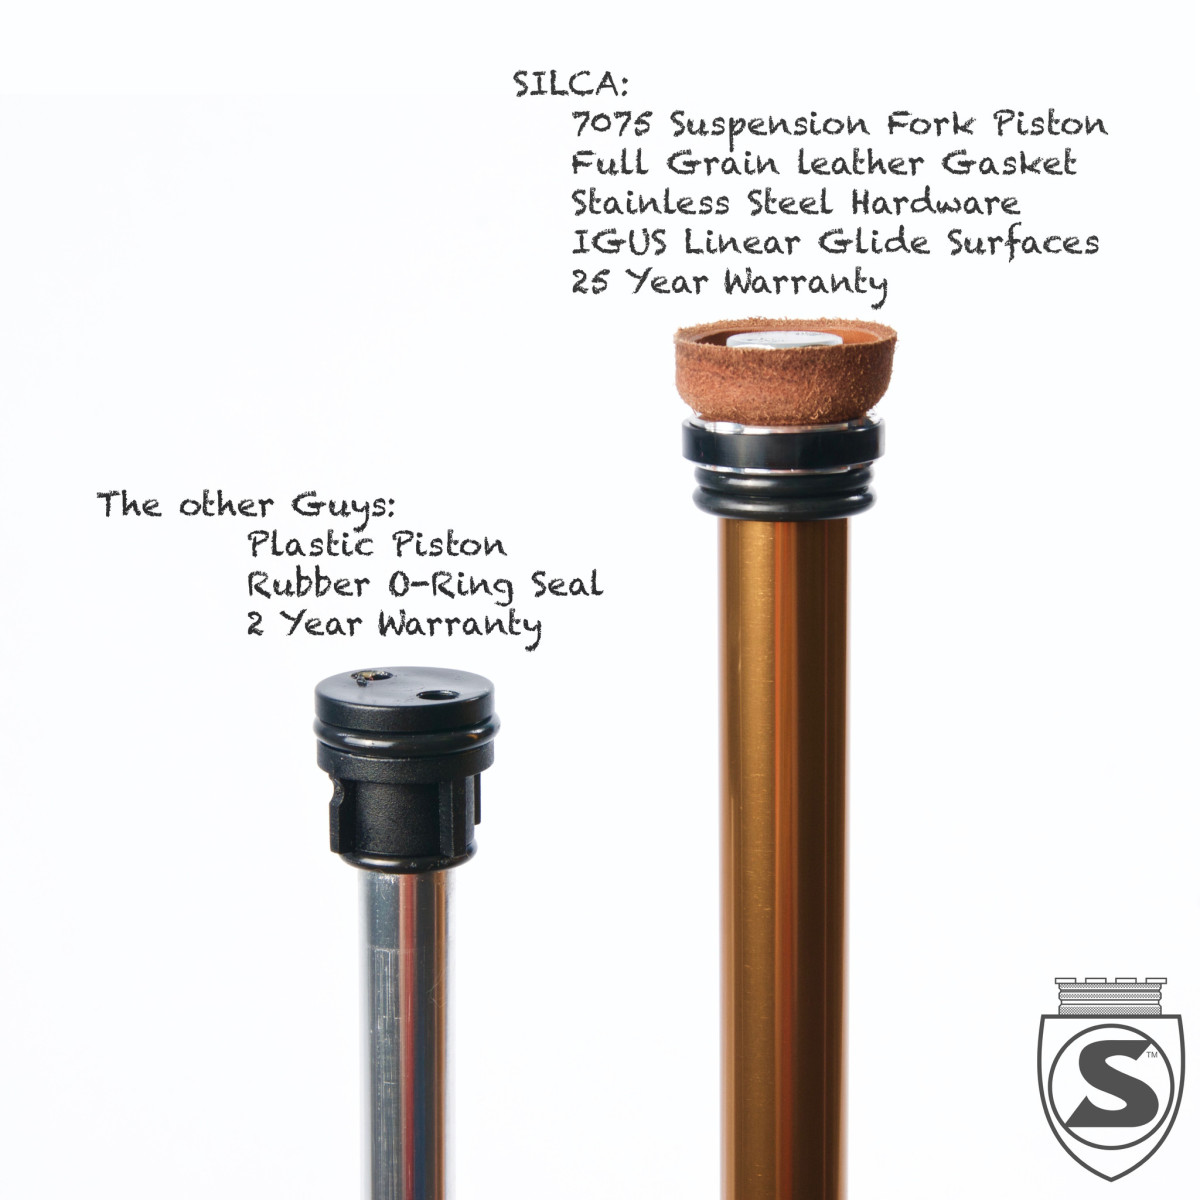 The quality is clear from the small details. These pump parts are made to perform and last